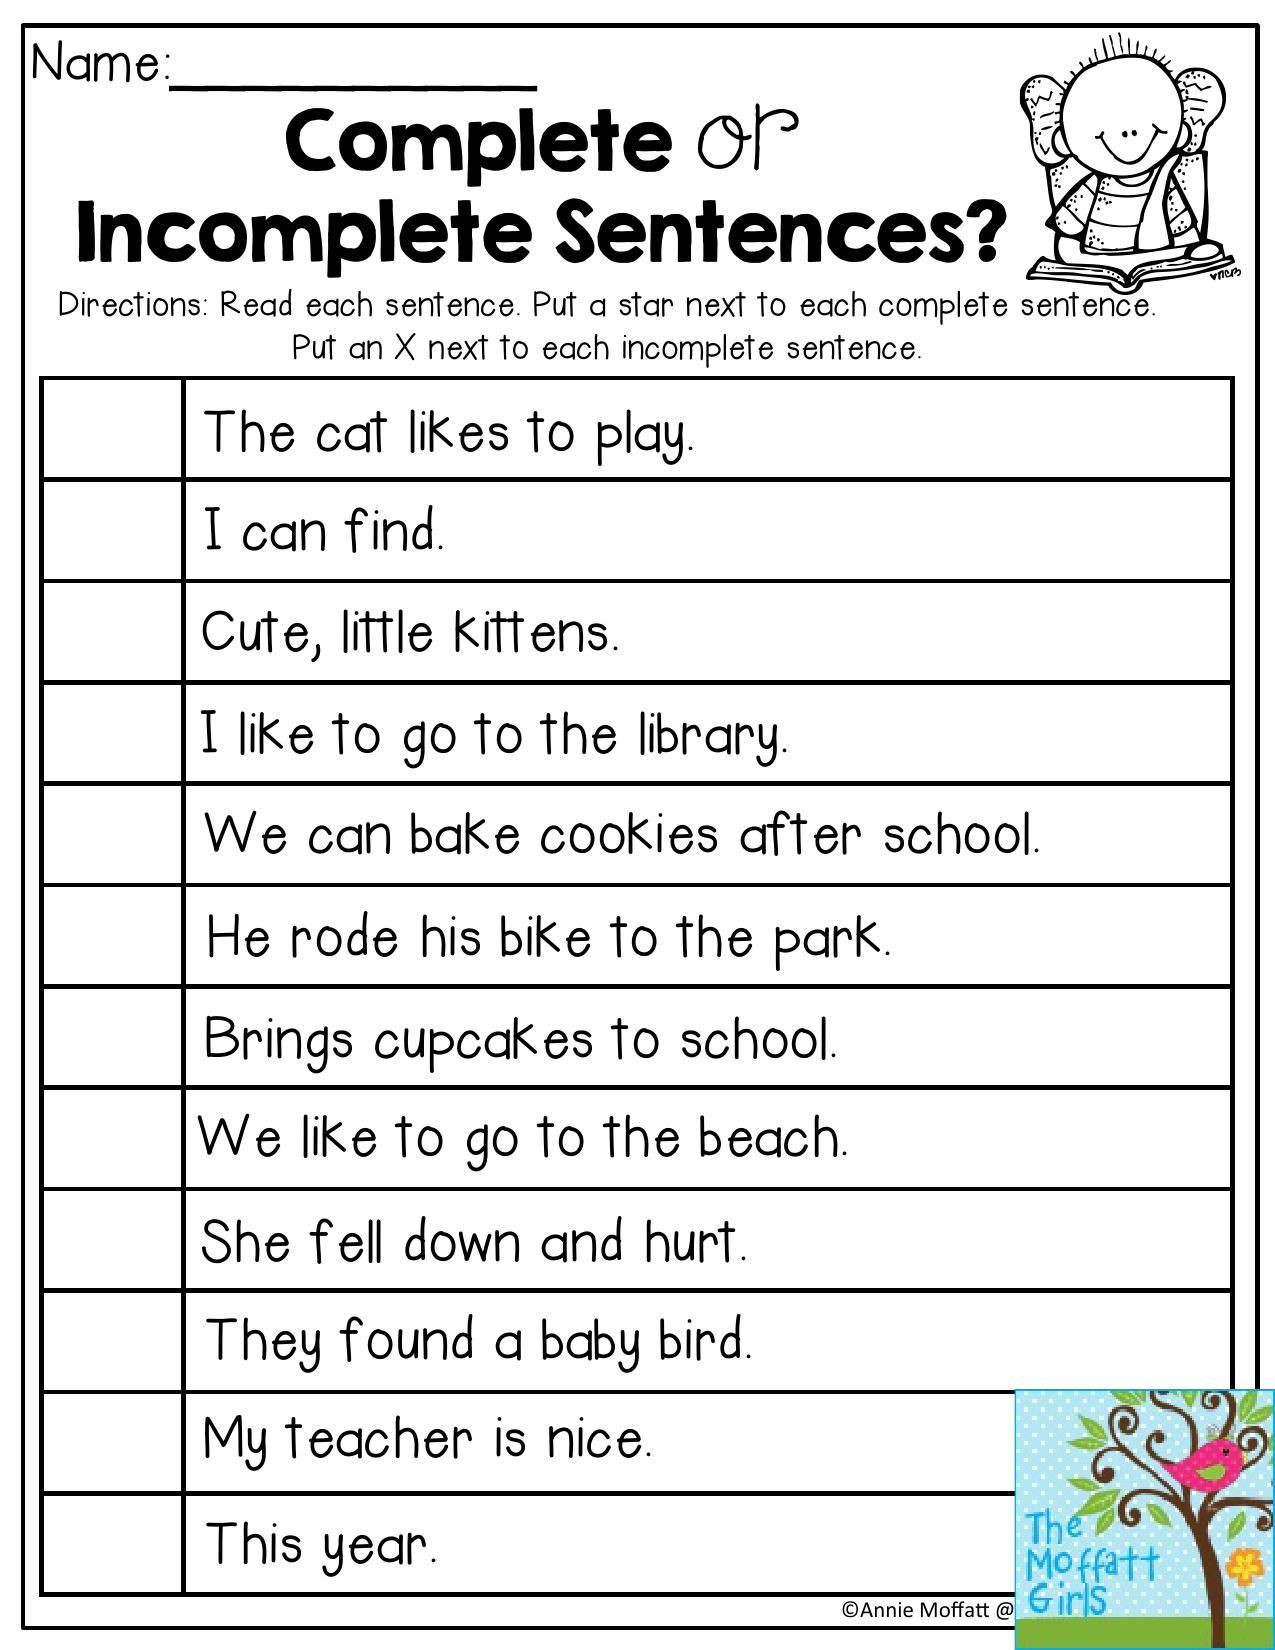 Complete Sentences Worksheets 2nd Grade Back to School Packets